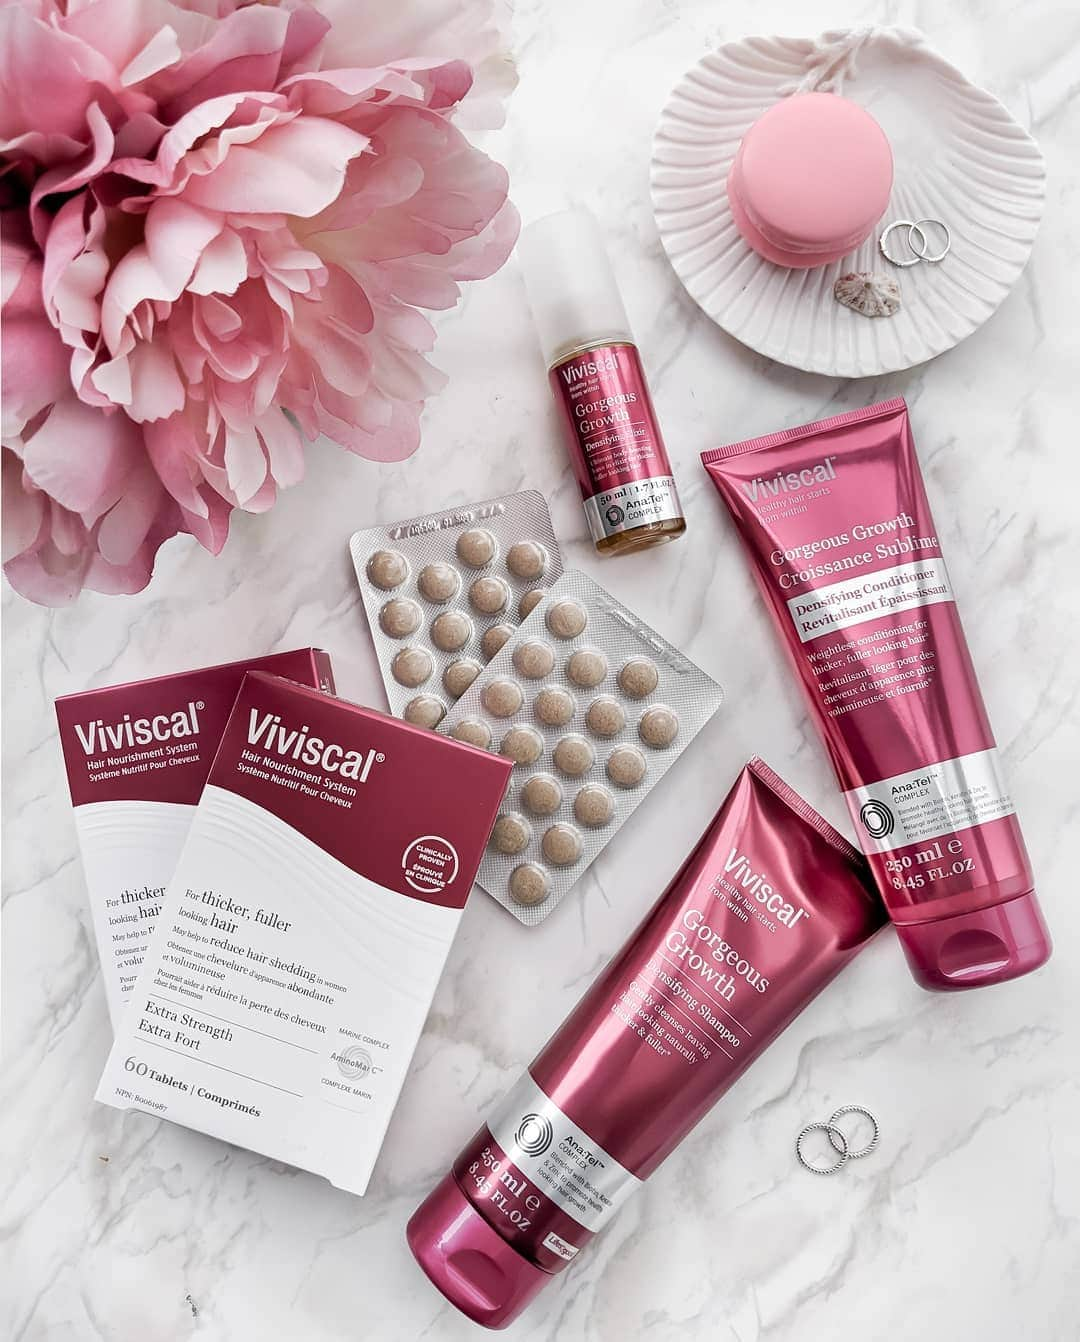 Viviscal Advanced Hair Health Supplements Discover the clinically proven, drug free answer to thicker and fuller hair